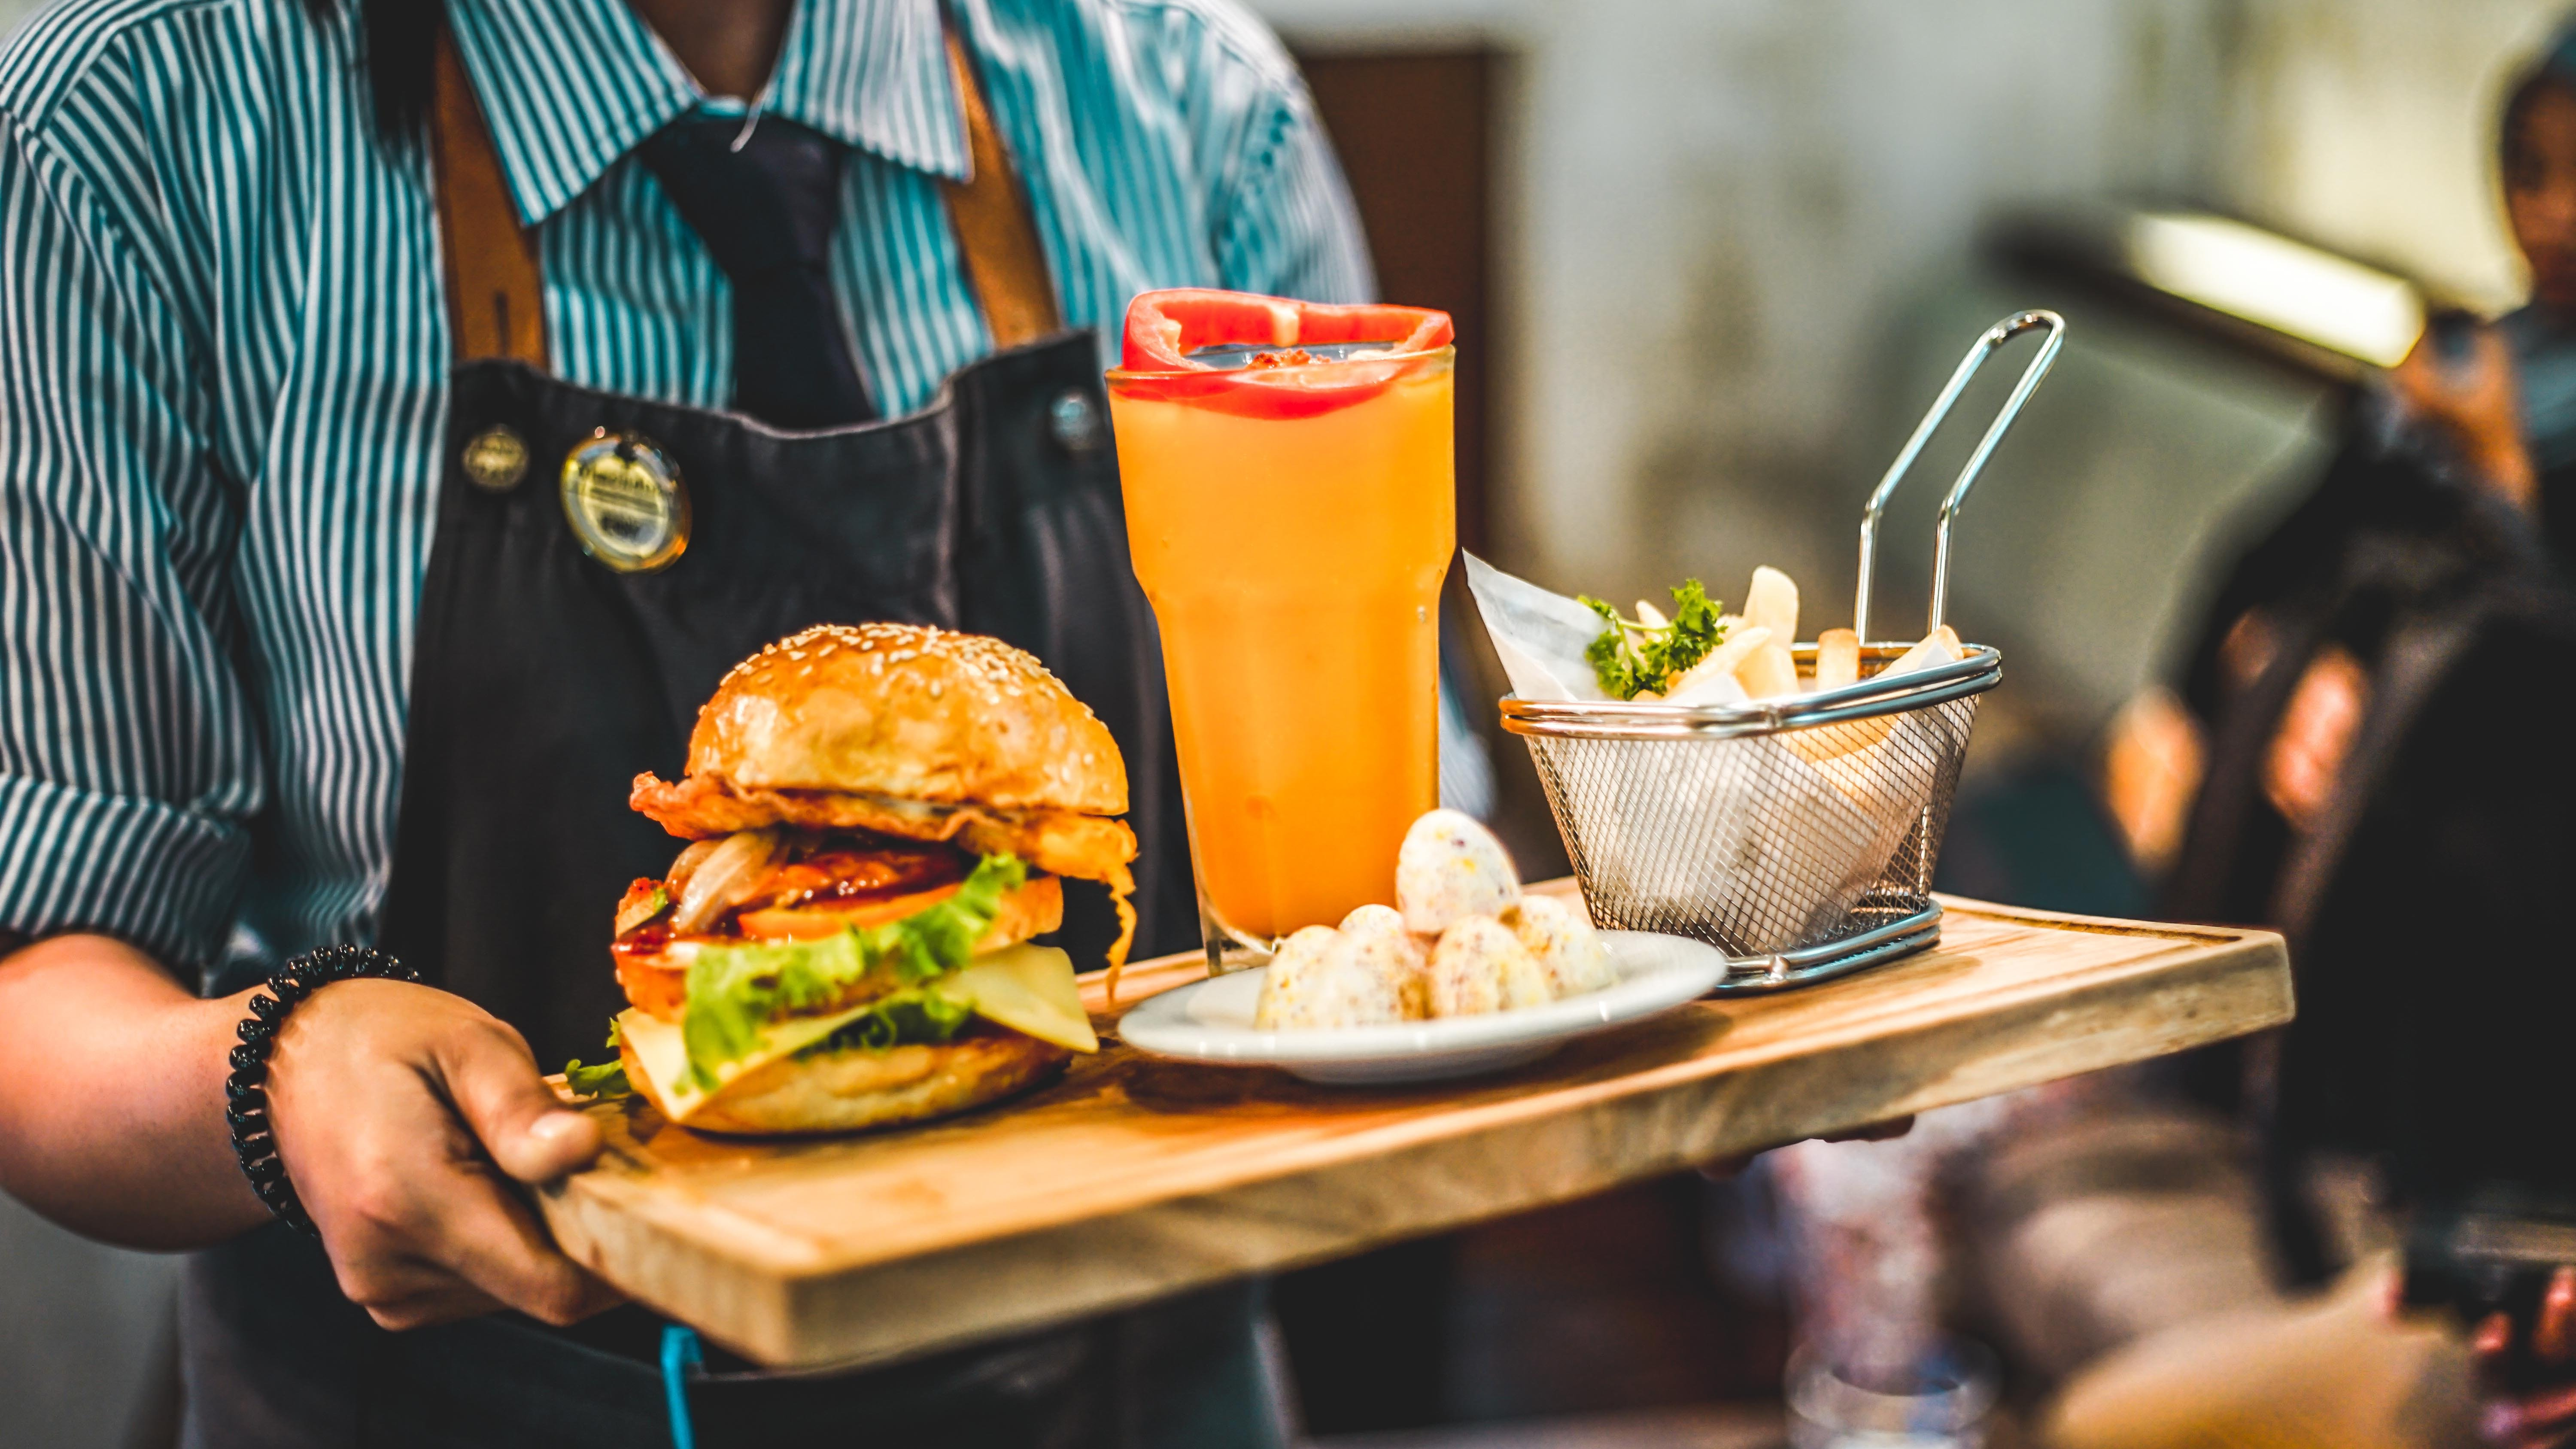 Burger, fries, and soft drink. | Source: Unsplash